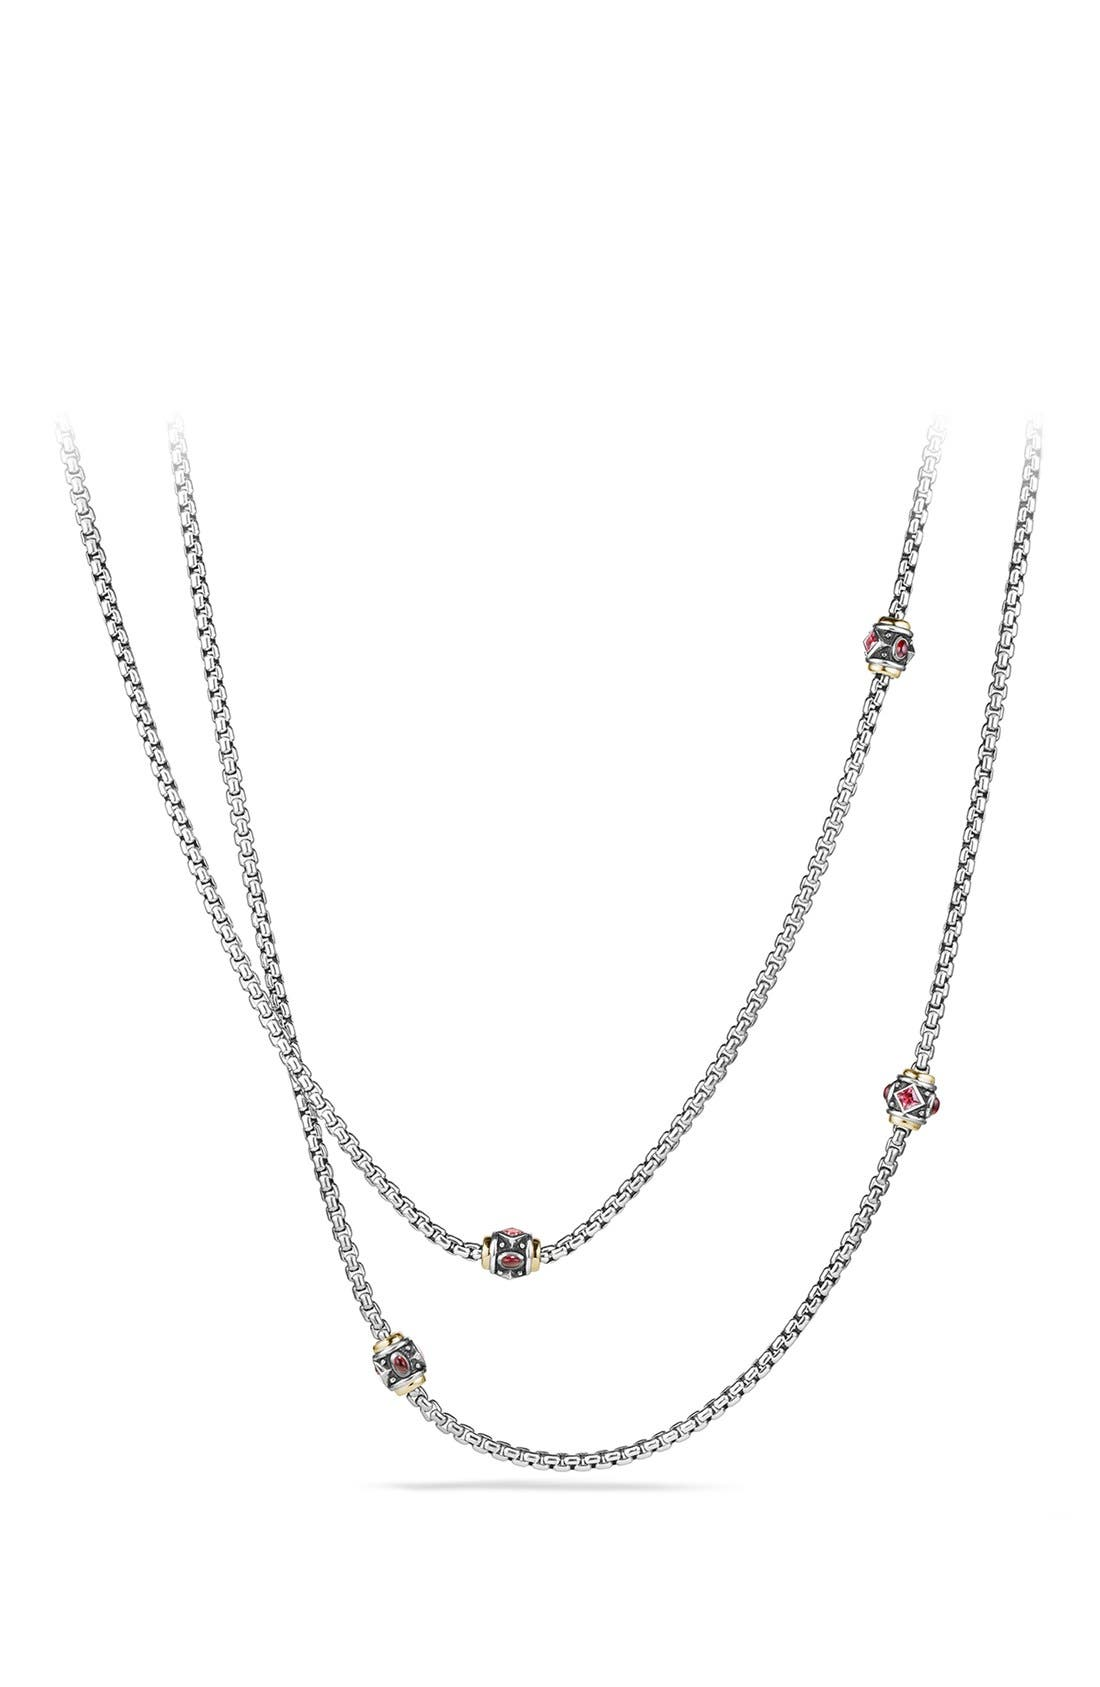 'Renaissance' Necklace with Semiprecious Stone and 18k Gold,                             Main thumbnail 1, color,                             650